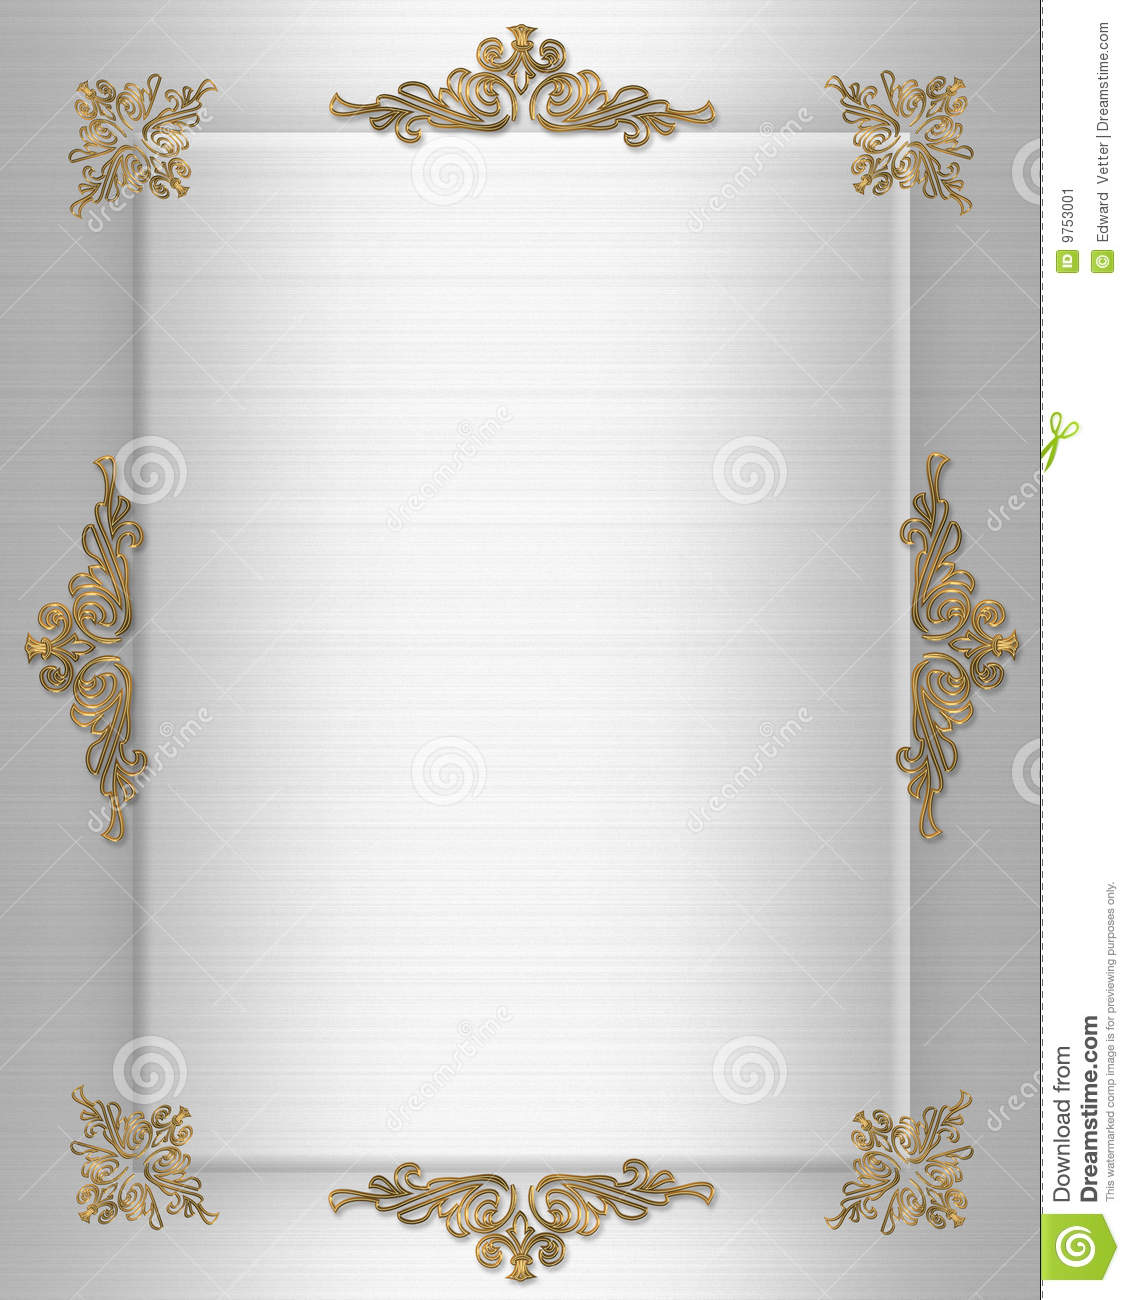 Wedding Invite Borders: Wedding Invitation Border Stock Image